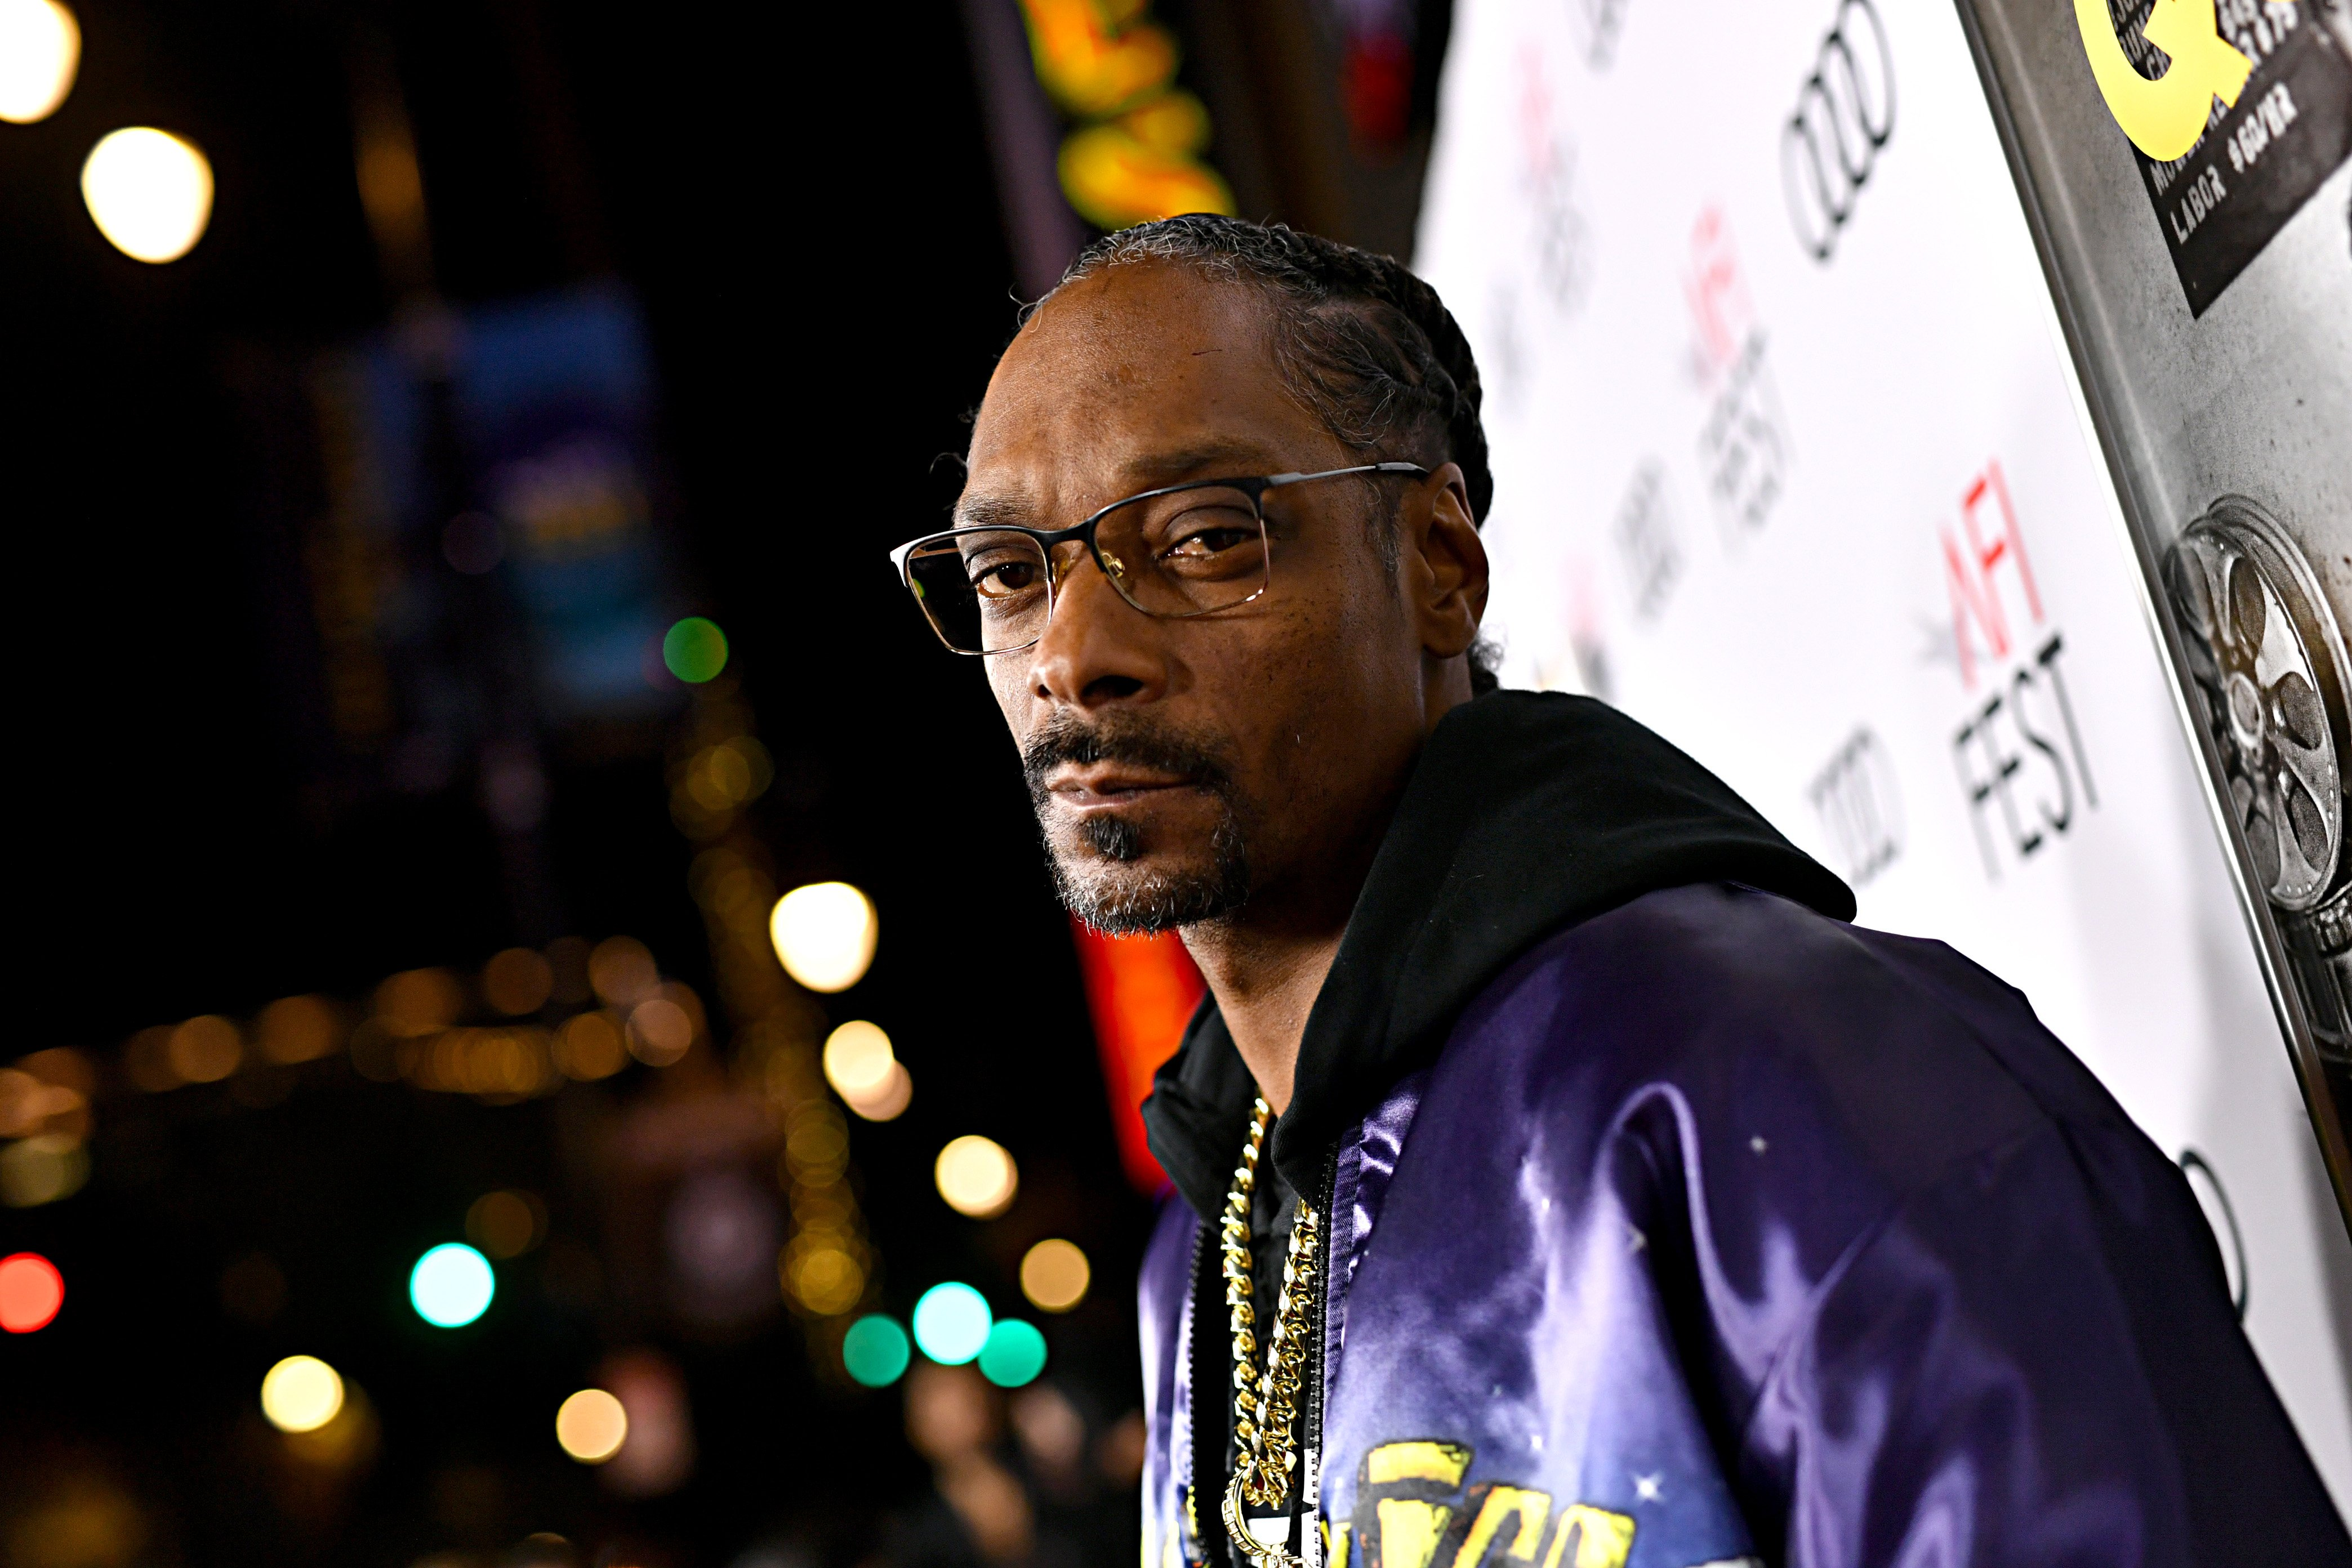 """Snoop Dogg at the """"Queen & Slim"""" premiere at the TCL Chinese Theatre on November 14, 2019 in Hollywood, California.   Source: Getty Images"""